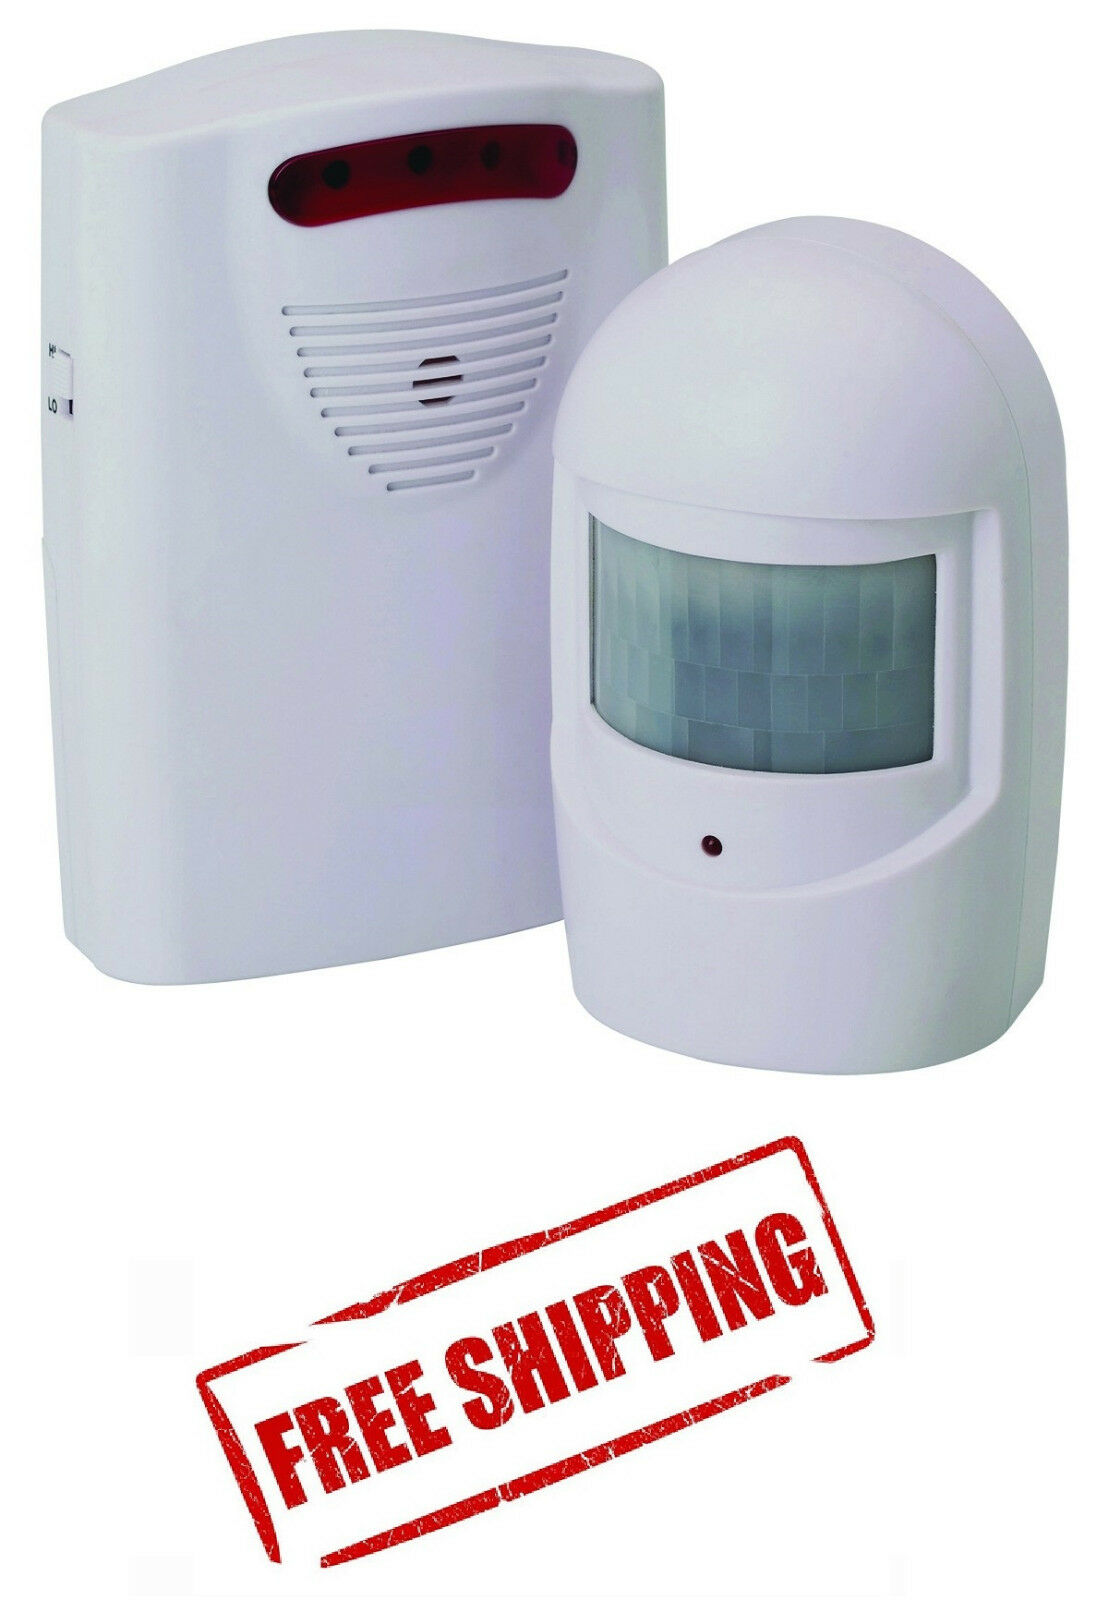 WIRELESS MOTION SENSOR DETECTOR DOOR GATE ENTRY BELL CHIME A